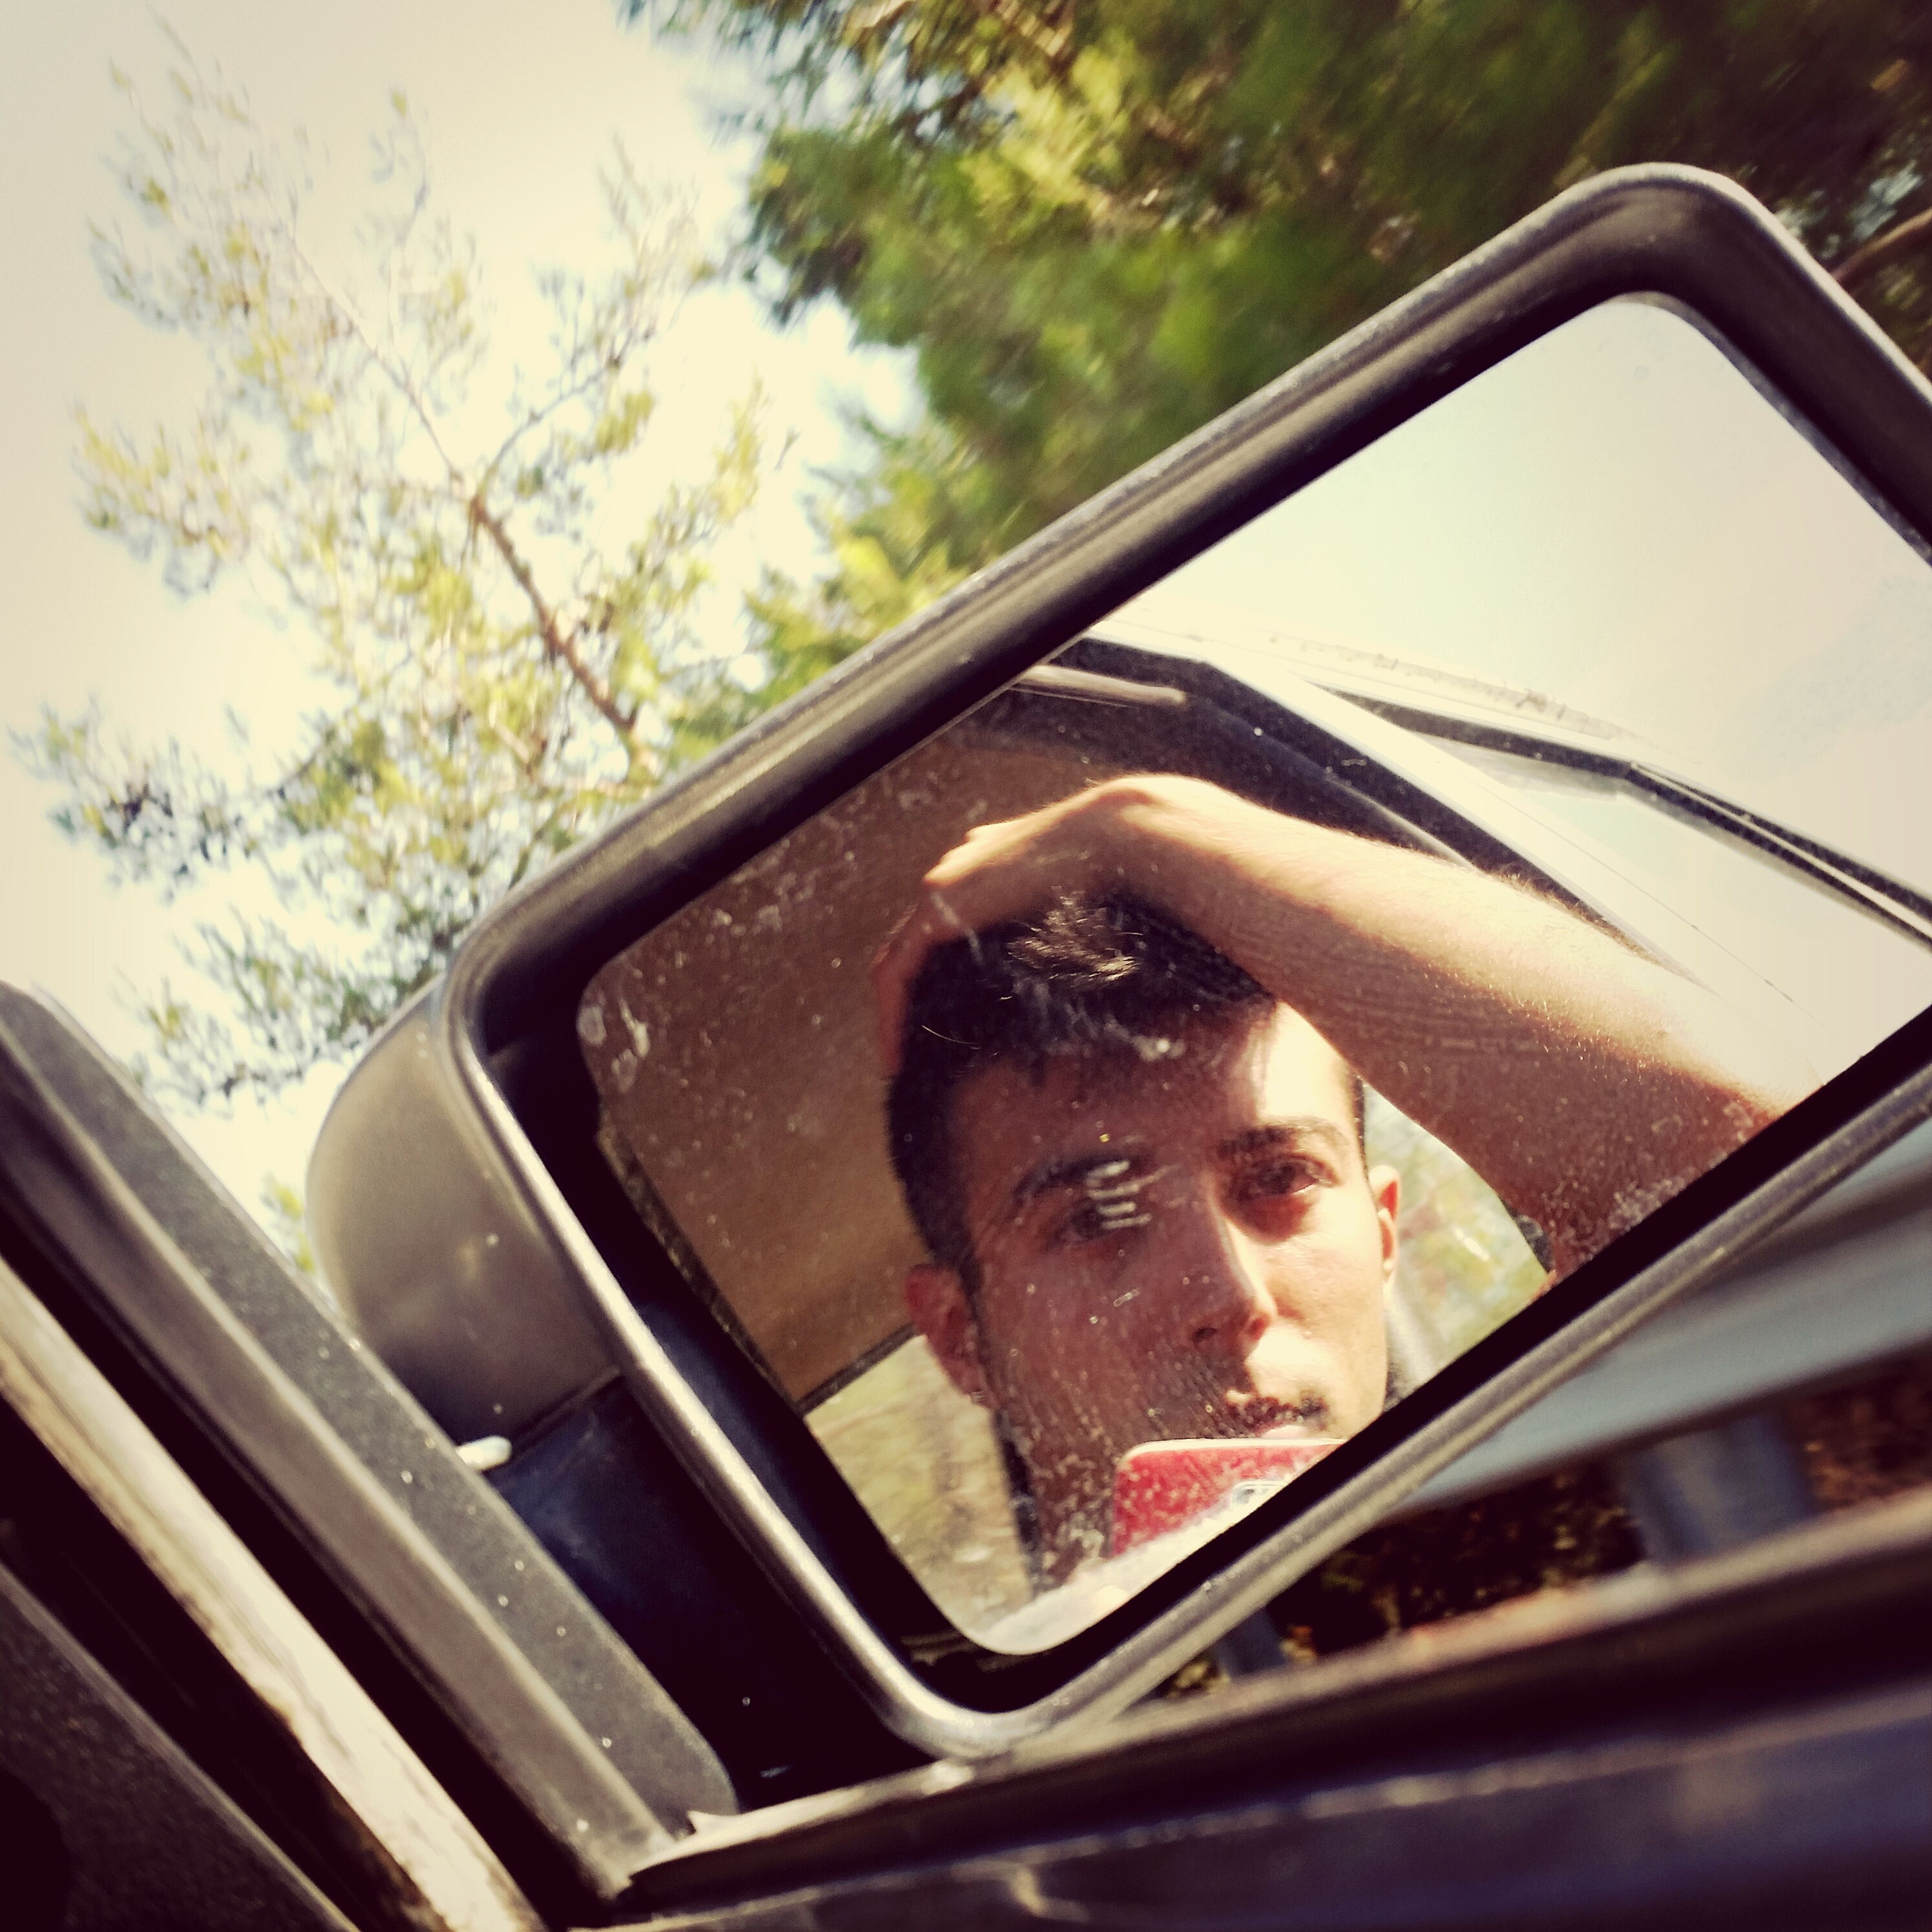 transportation, car, mode of transport, land vehicle, vehicle interior, car interior, window, young adult, looking at camera, person, travel, portrait, sunglasses, front view, headshot, close-up, glass - material, reflection